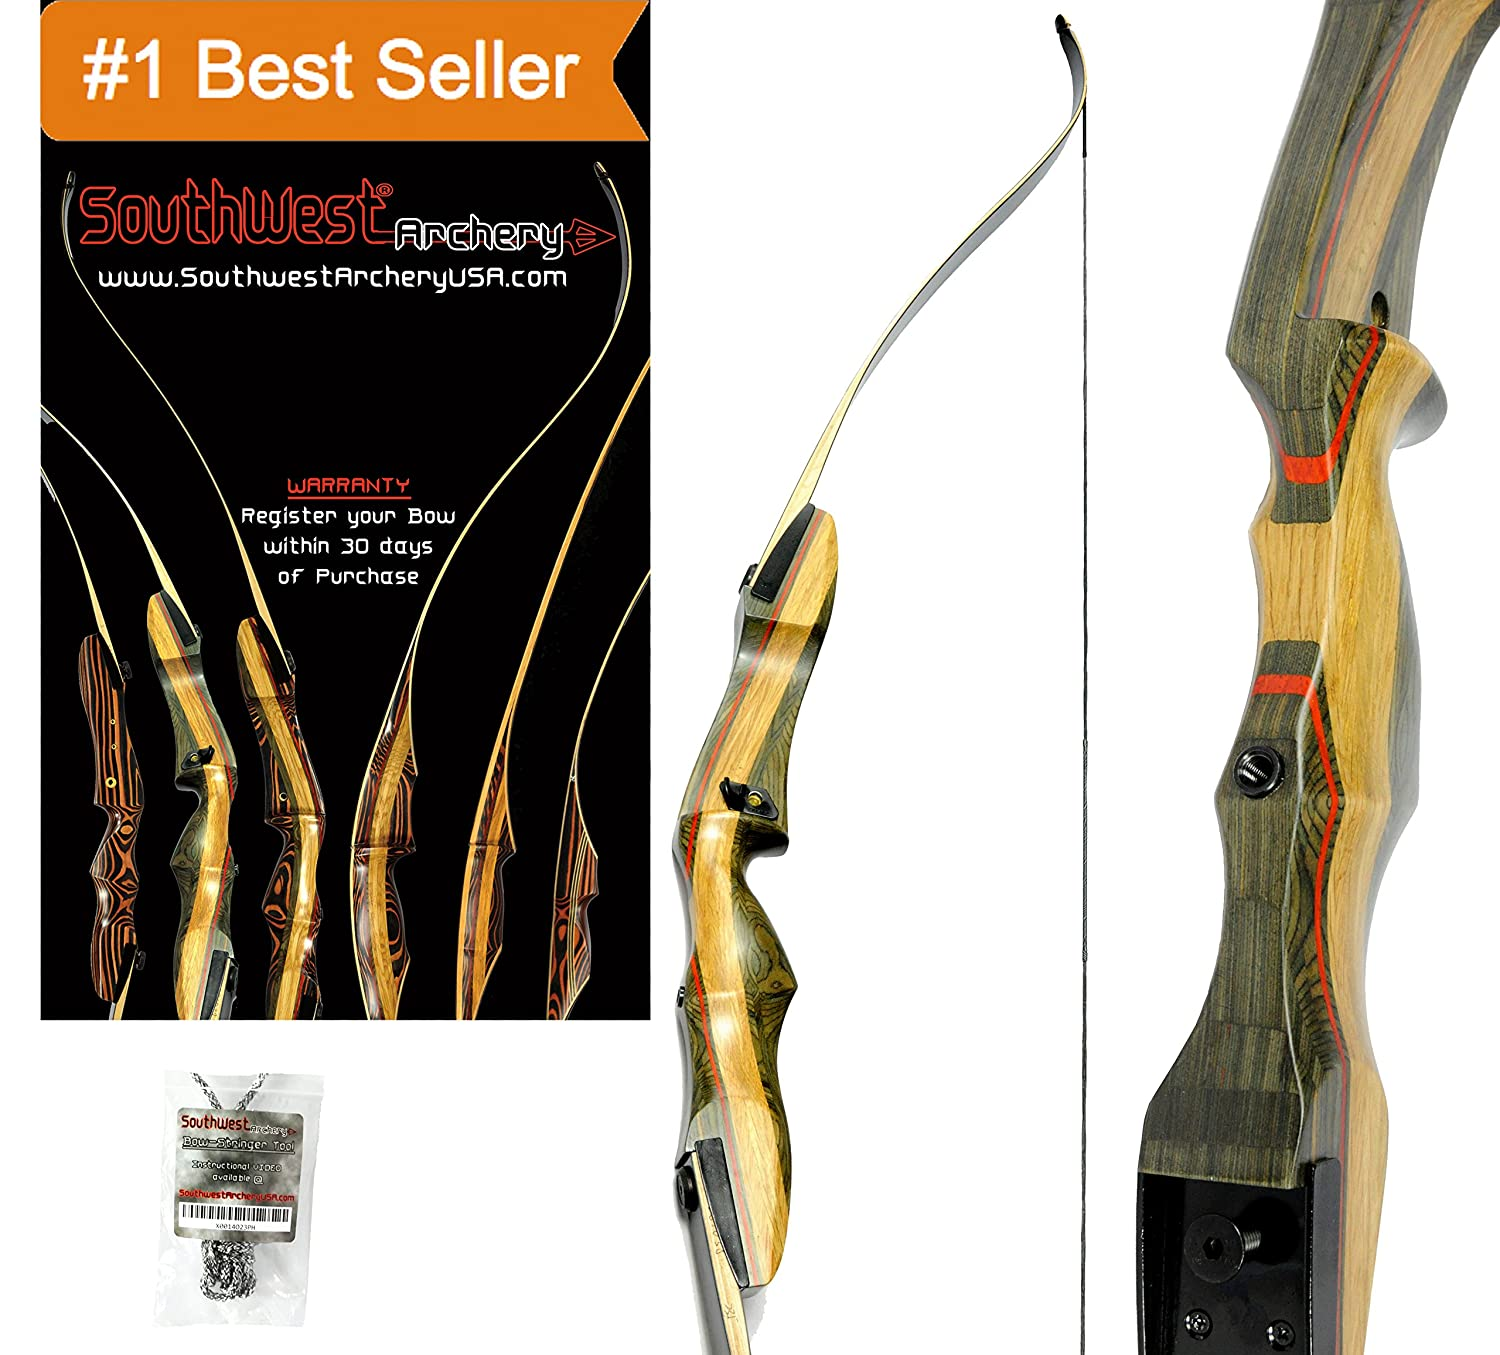 Amazon spyder takedown recurve bow and arrow by southwest amazon spyder takedown recurve bow and arrow by southwest archery usa weights 20 60 lb left or right handed archery kit sports outdoors solutioingenieria Image collections